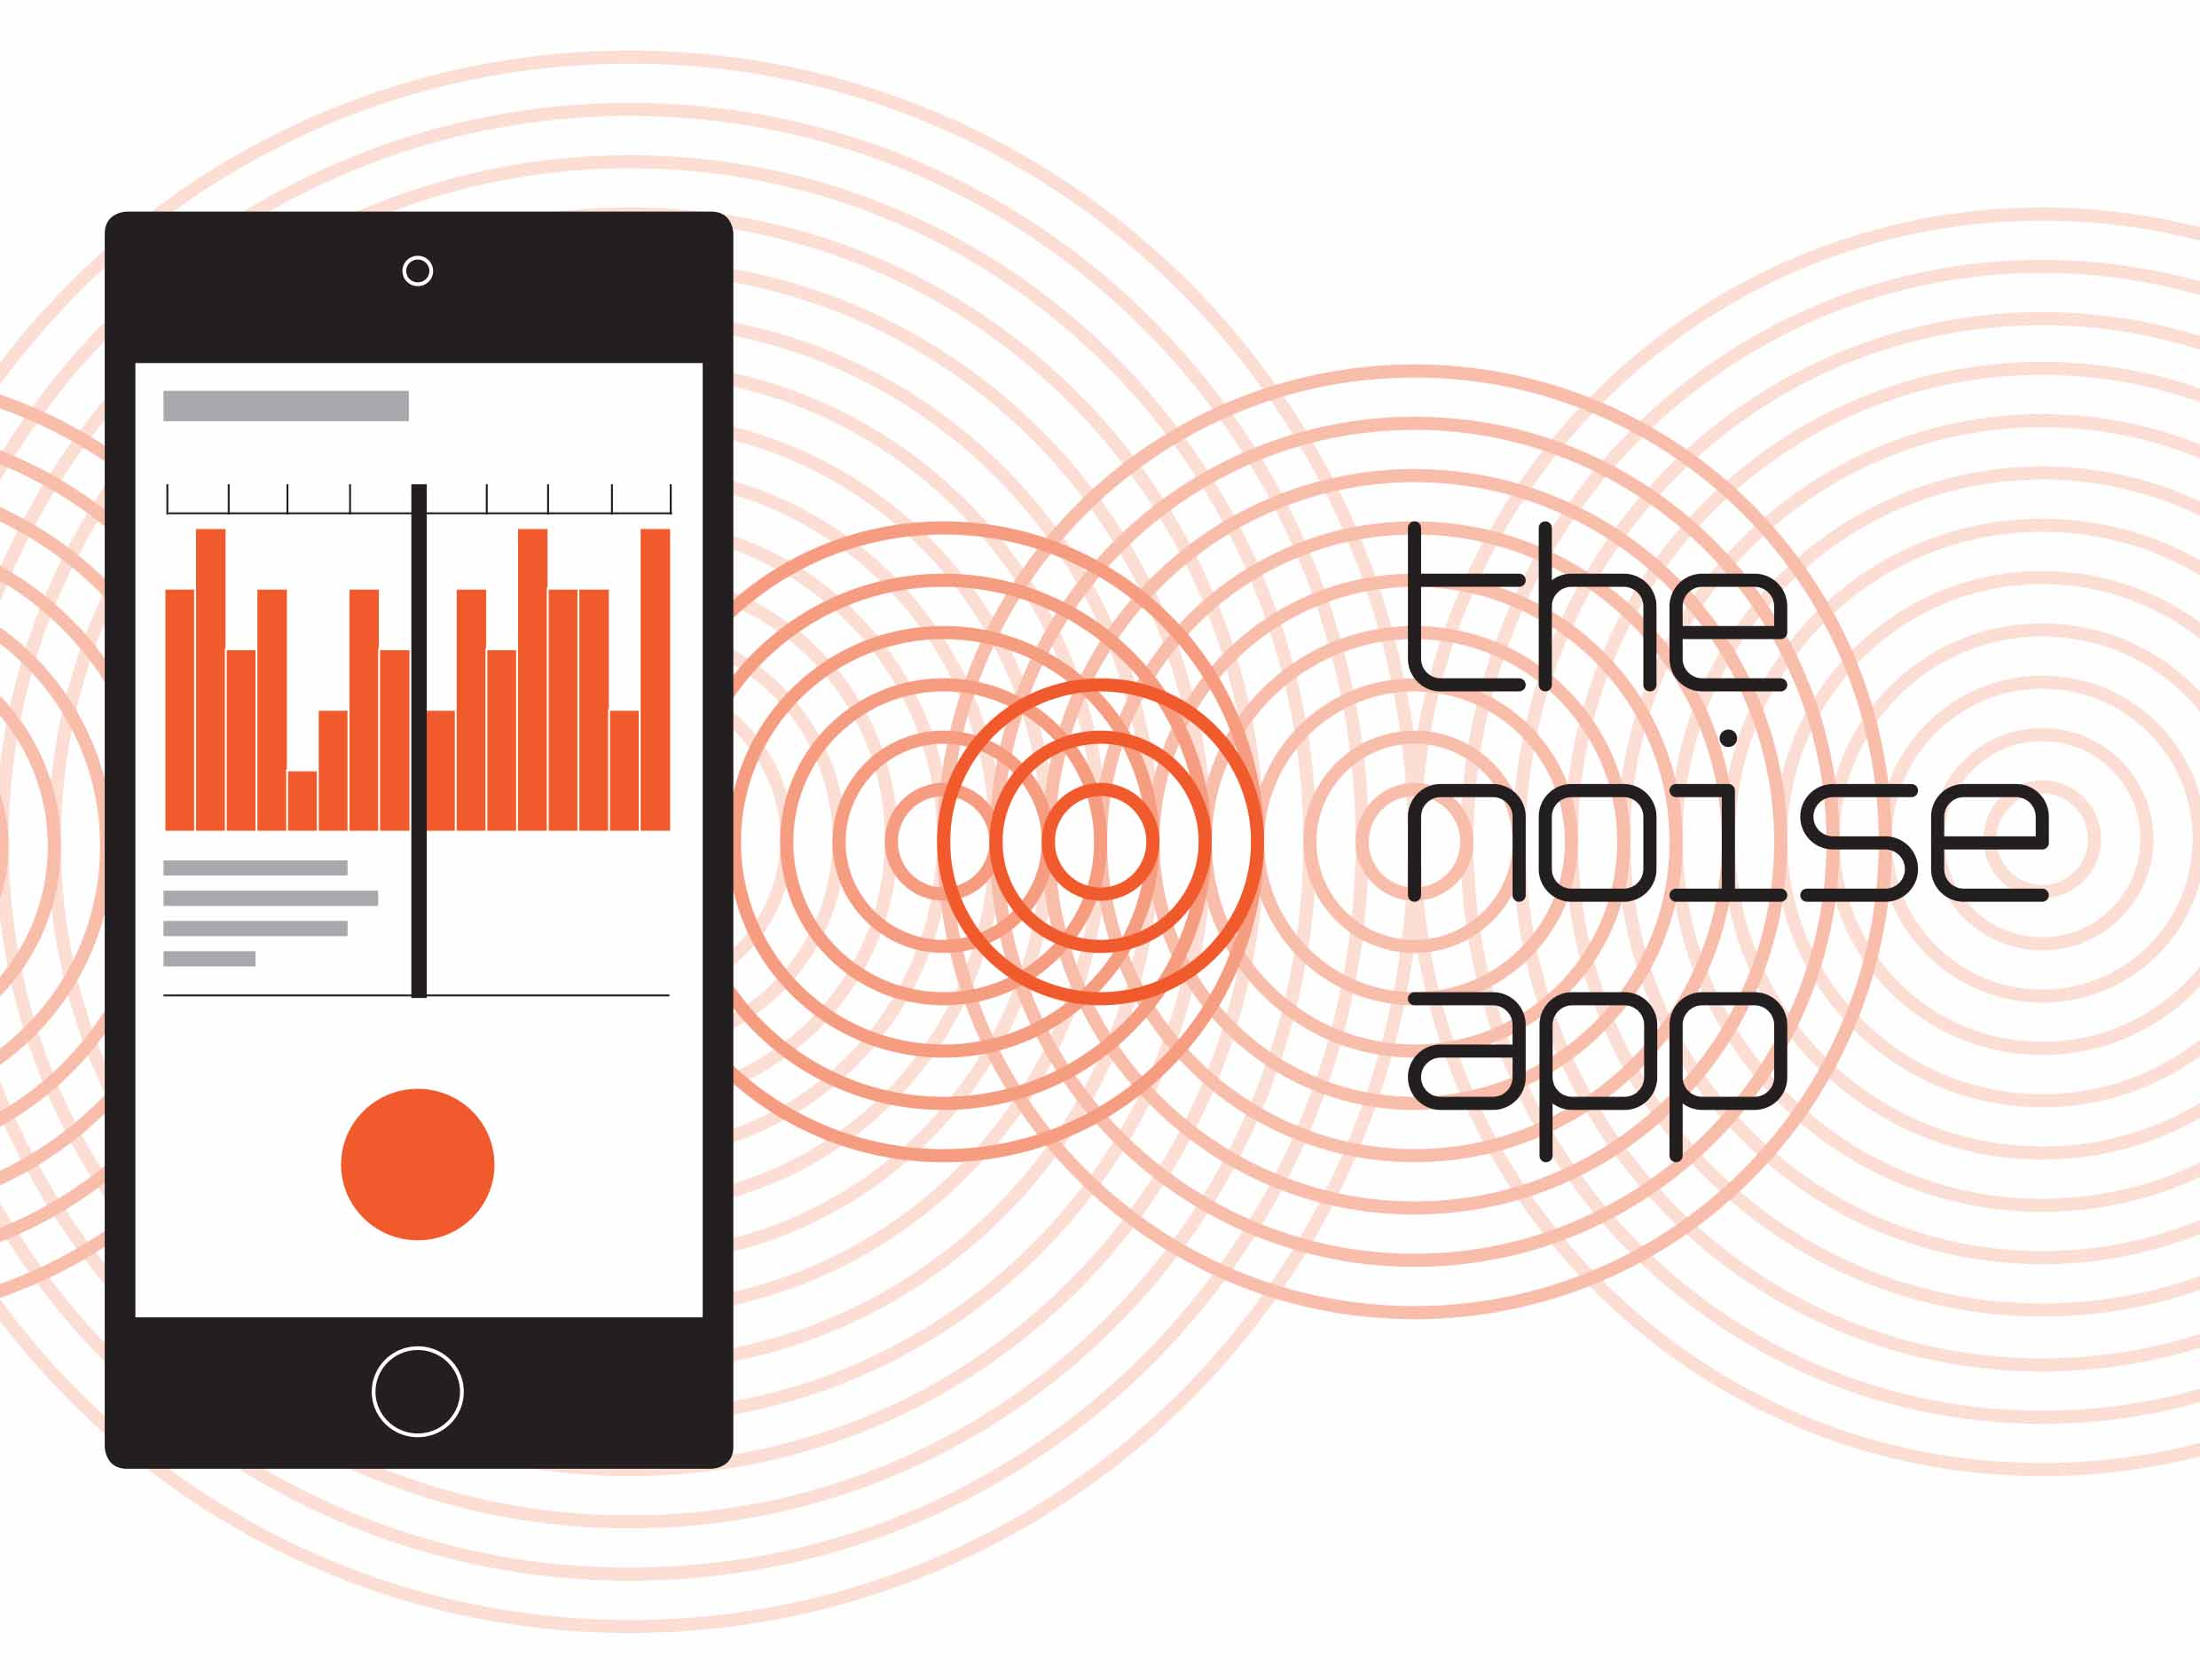 Promotional Image for The Noise App